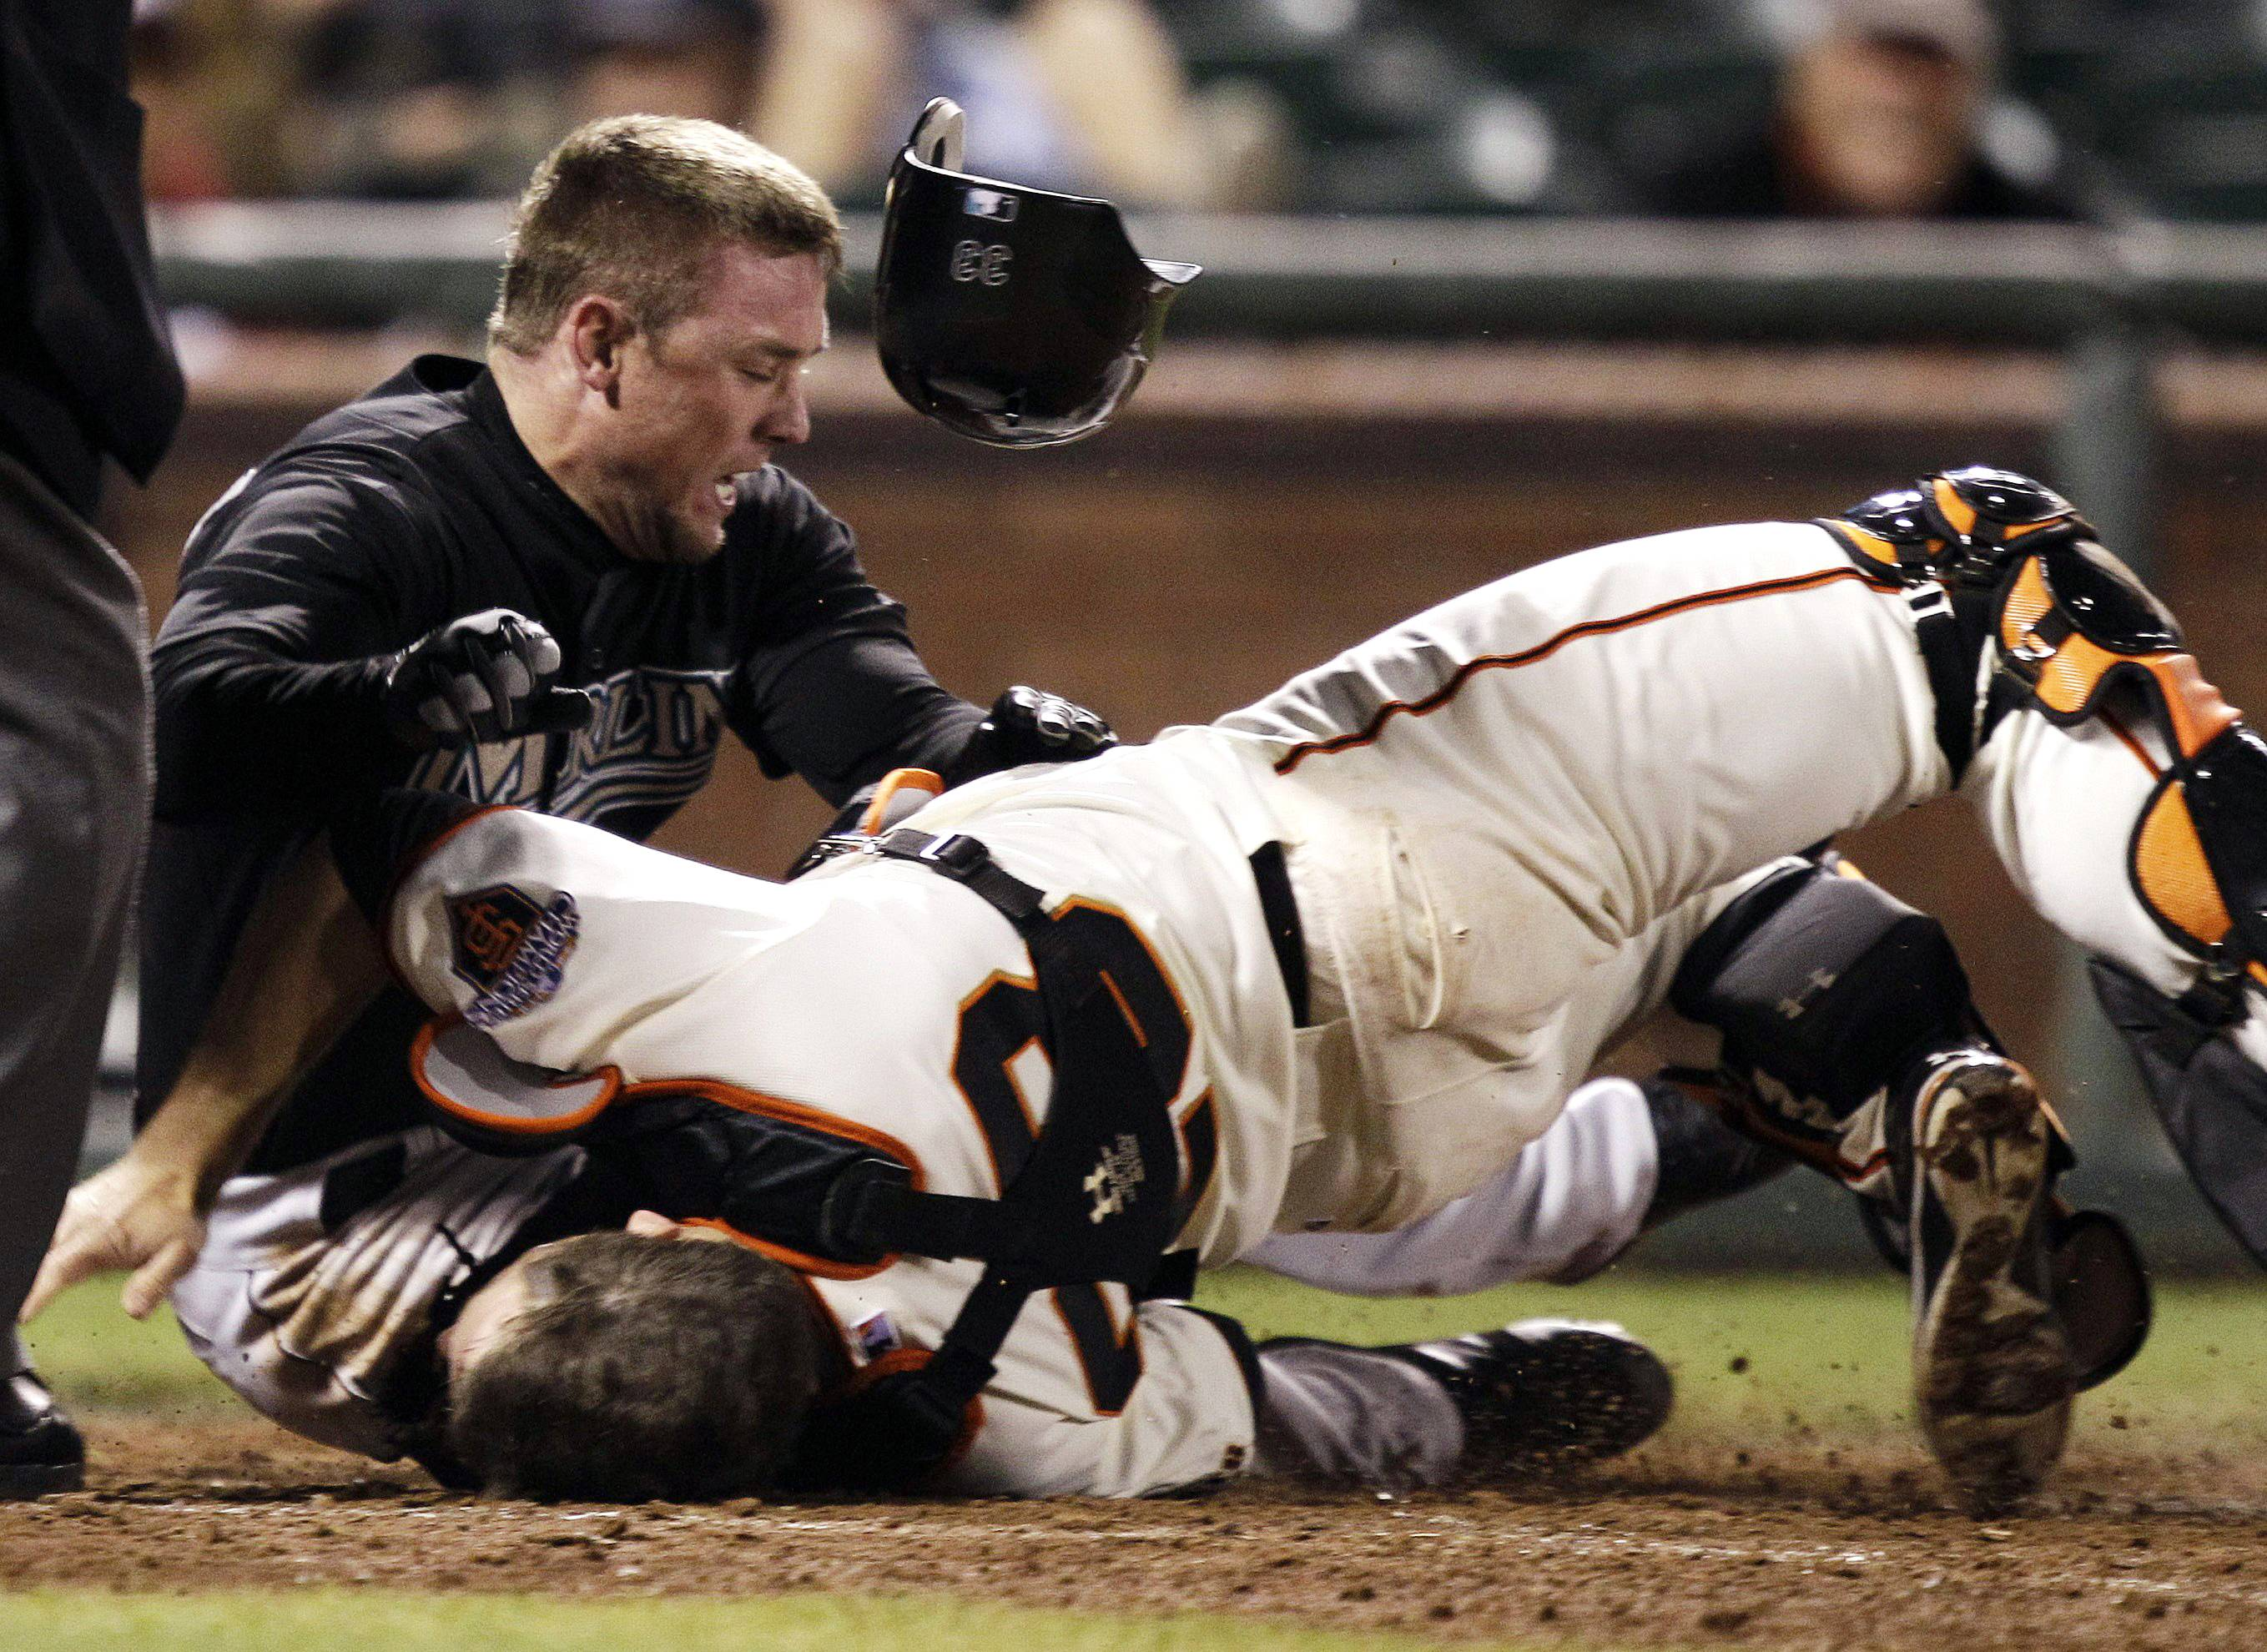 This collision at home plate in 2011 would now be subject to a new rule. The rule, 7.13, was adopted by MLB and the players' association on a one-year experimental basis, the sides said Monday. The umpire crew chief can use the new video-review system to determine whether the rule was violated.